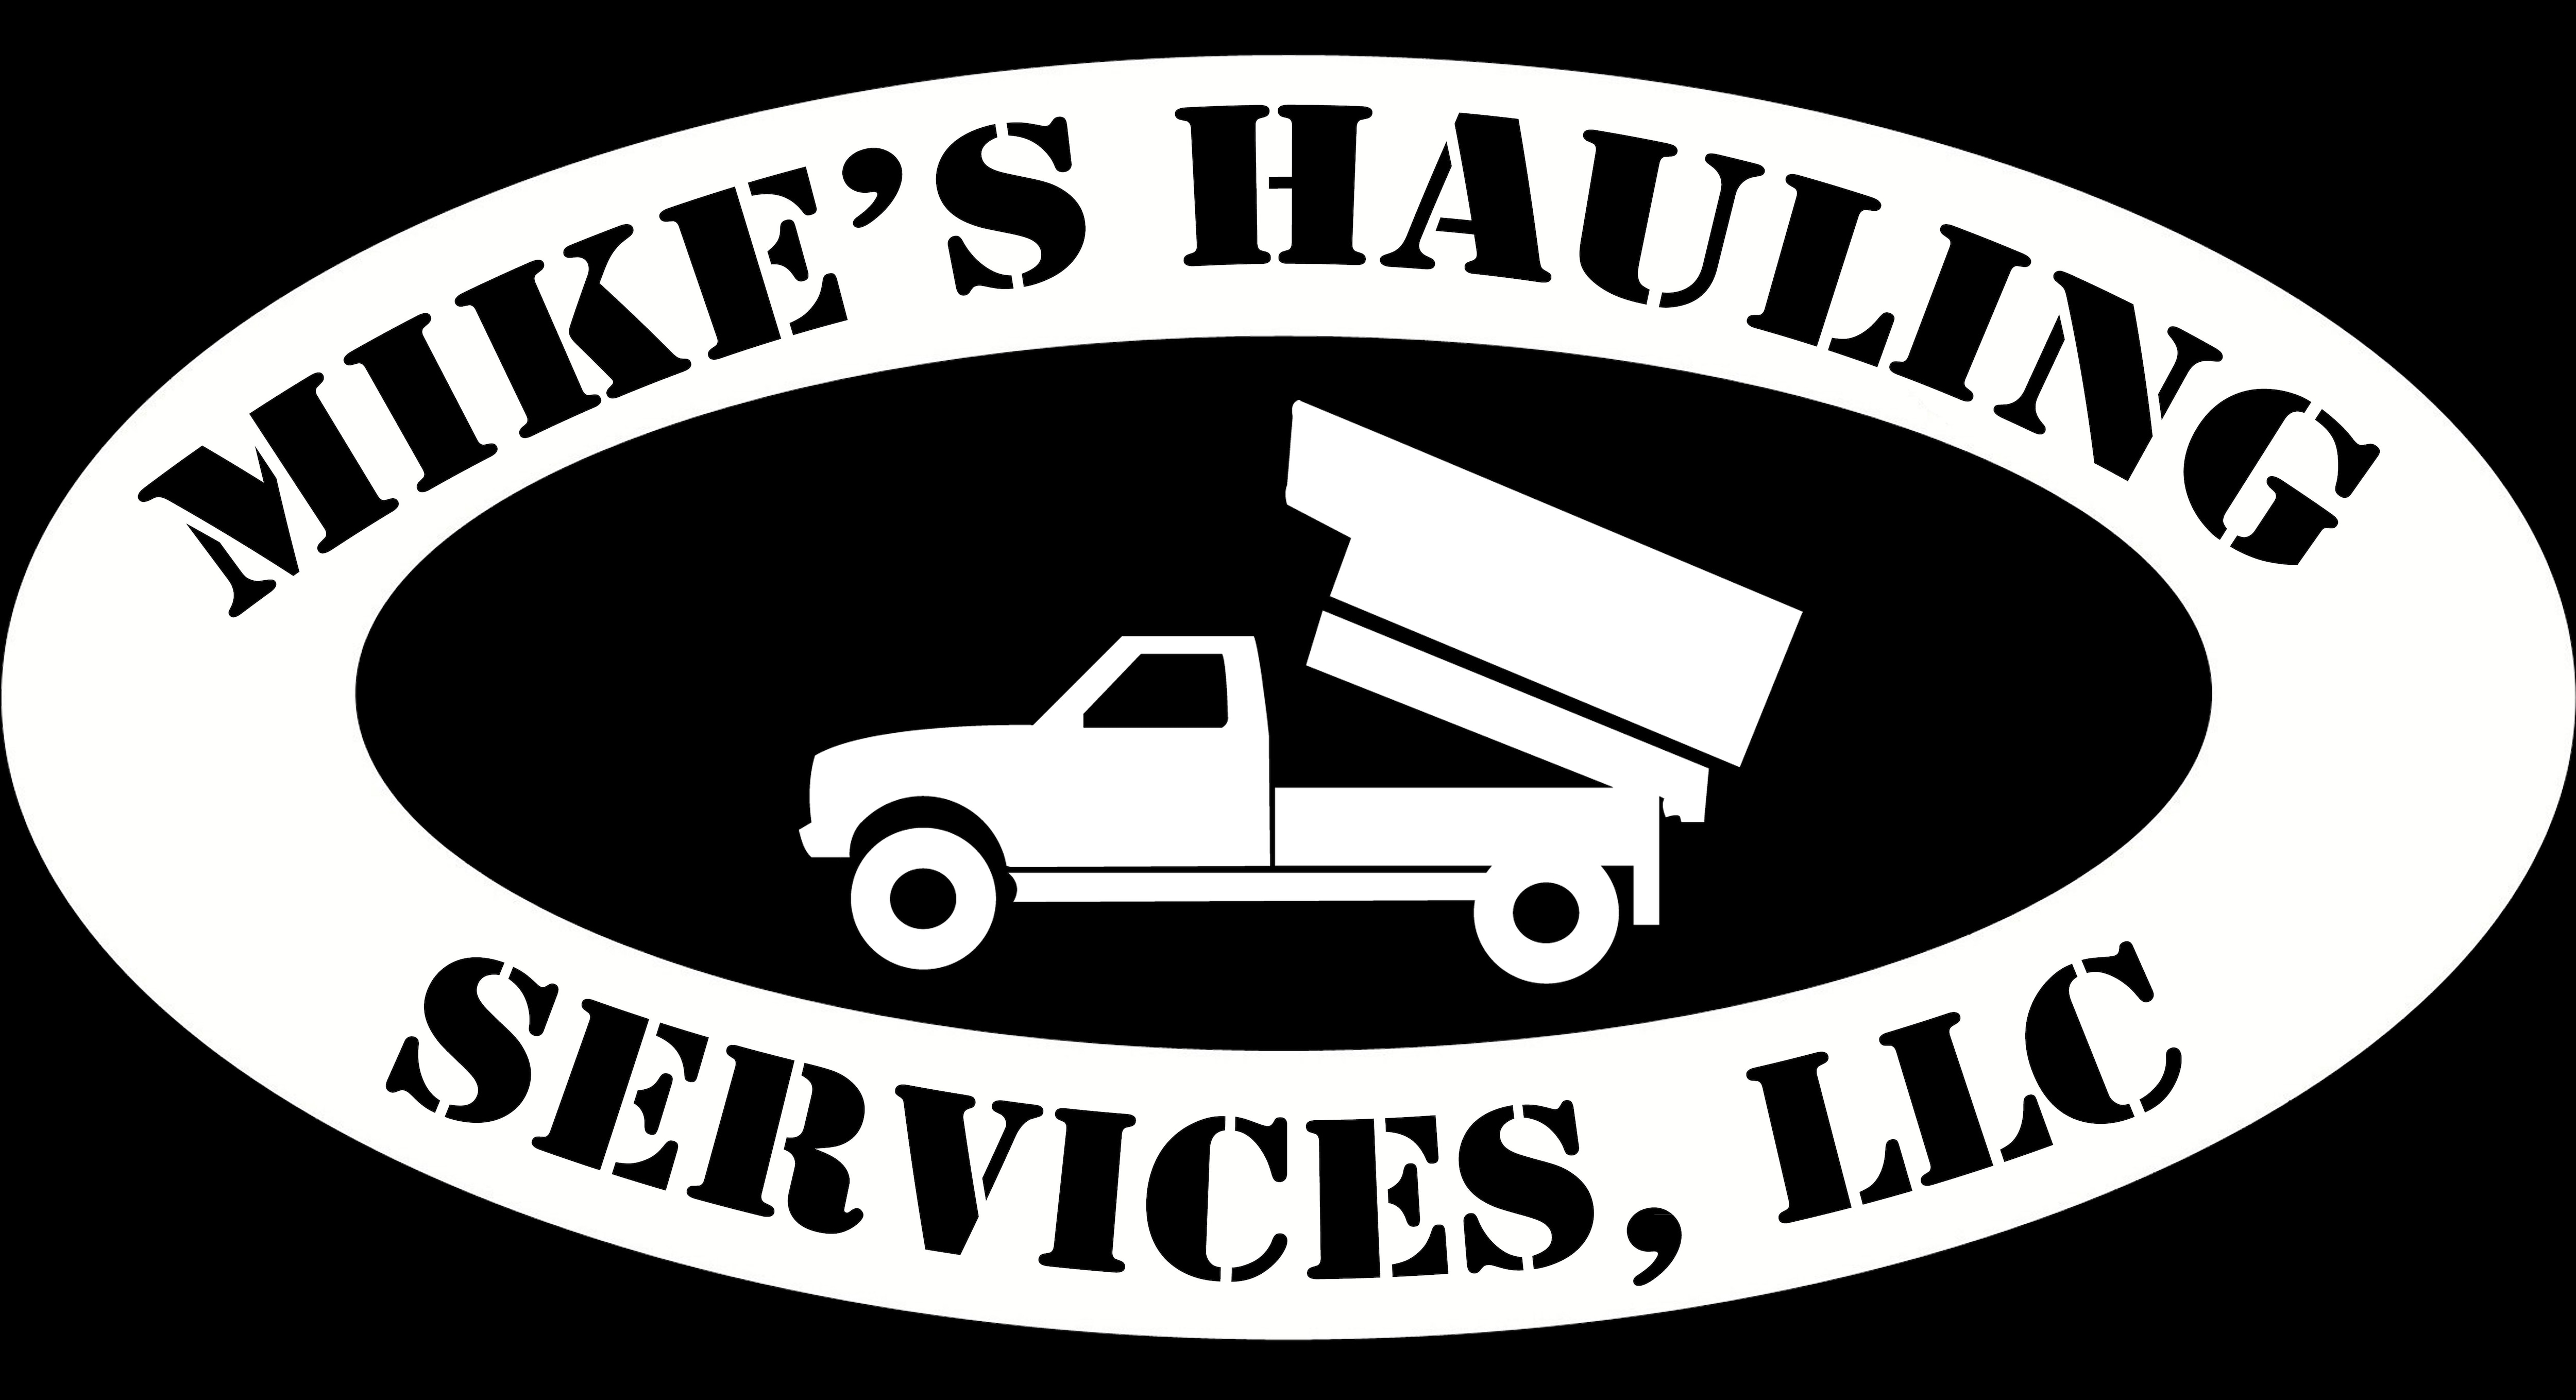 Mike's Hauling Services - (440) 371-3319 logo